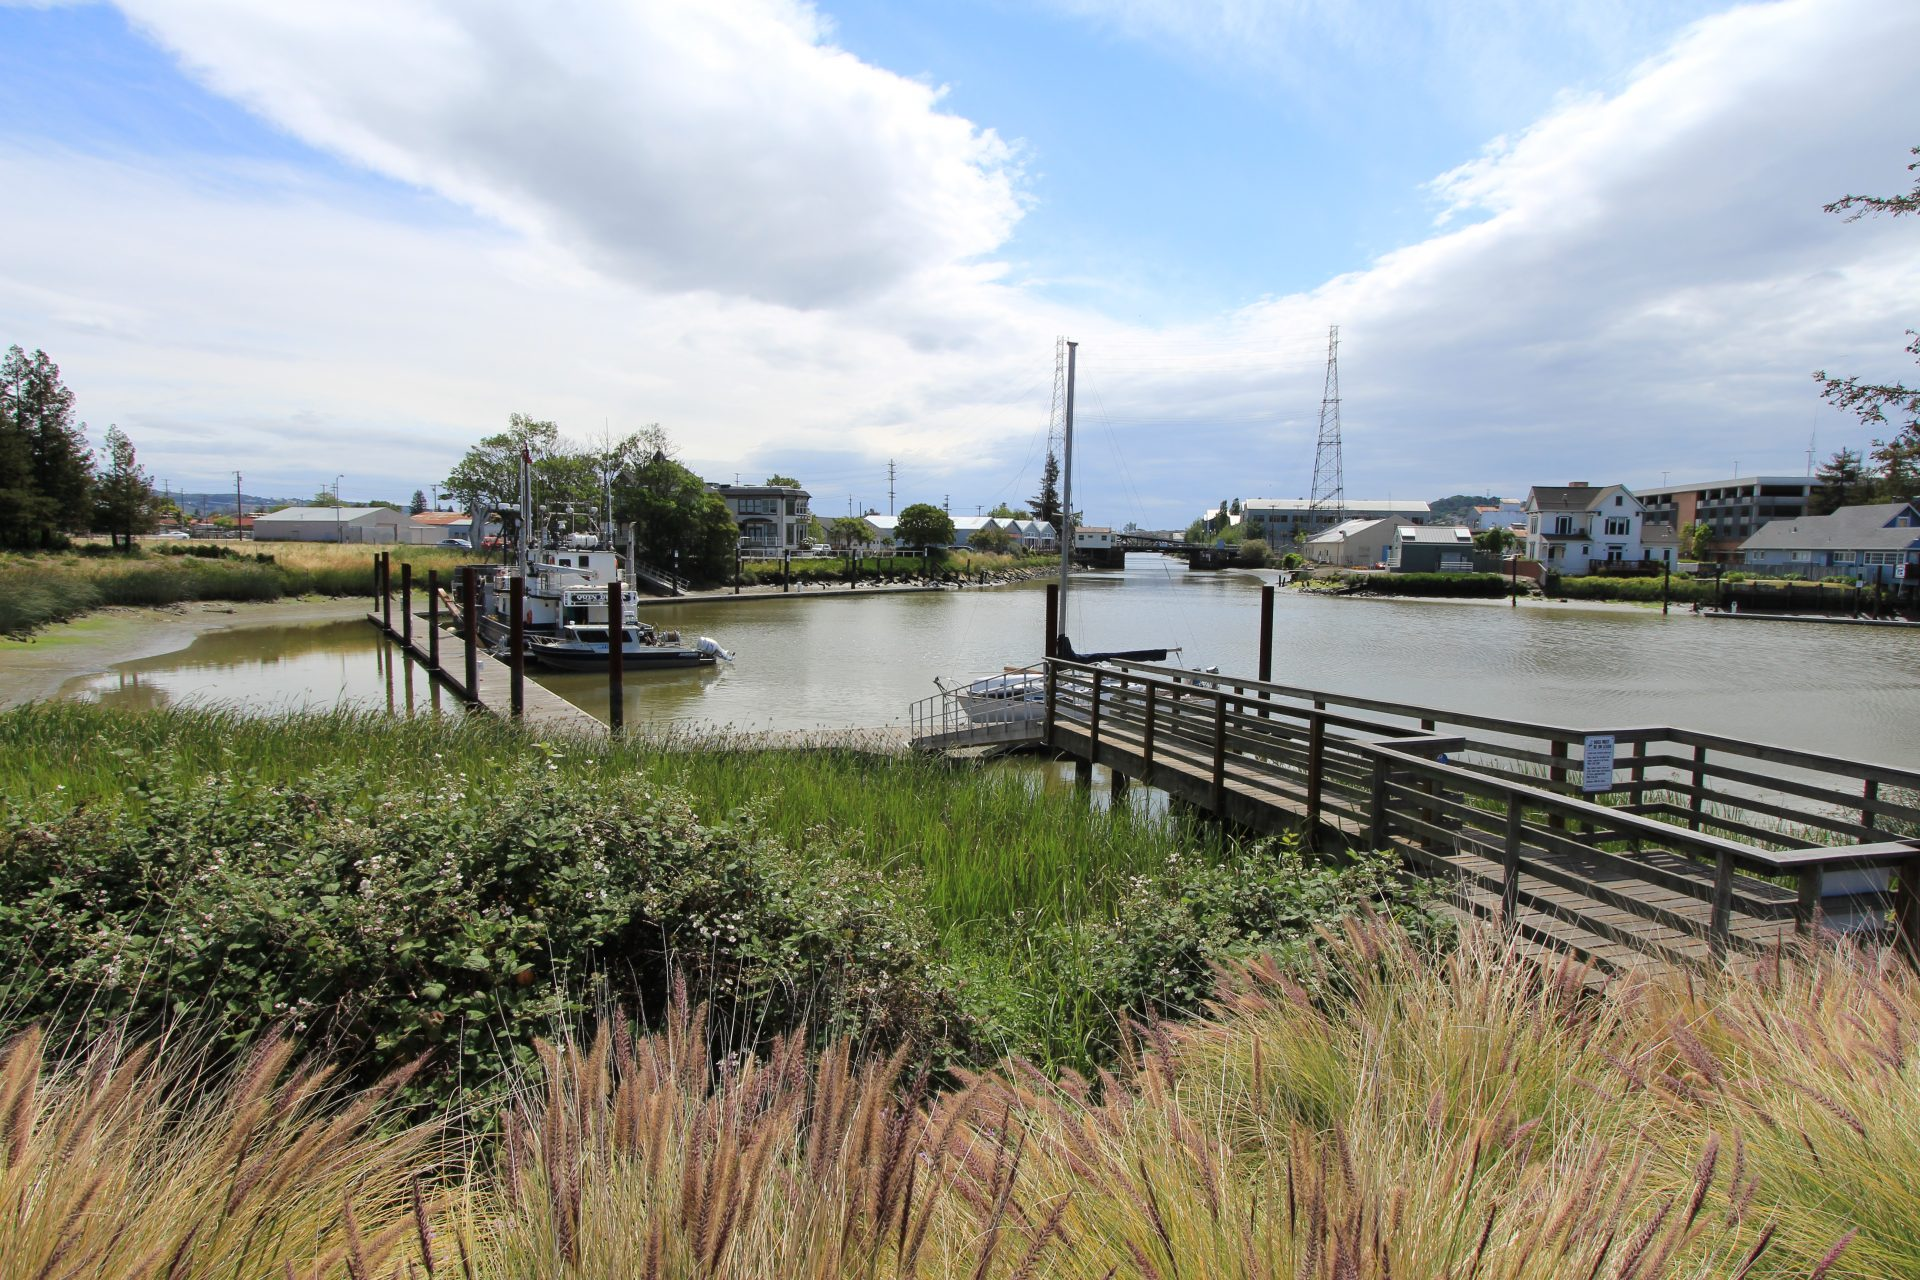 Marsh plants in foreground, wooden walkway on right, river and boats in distance